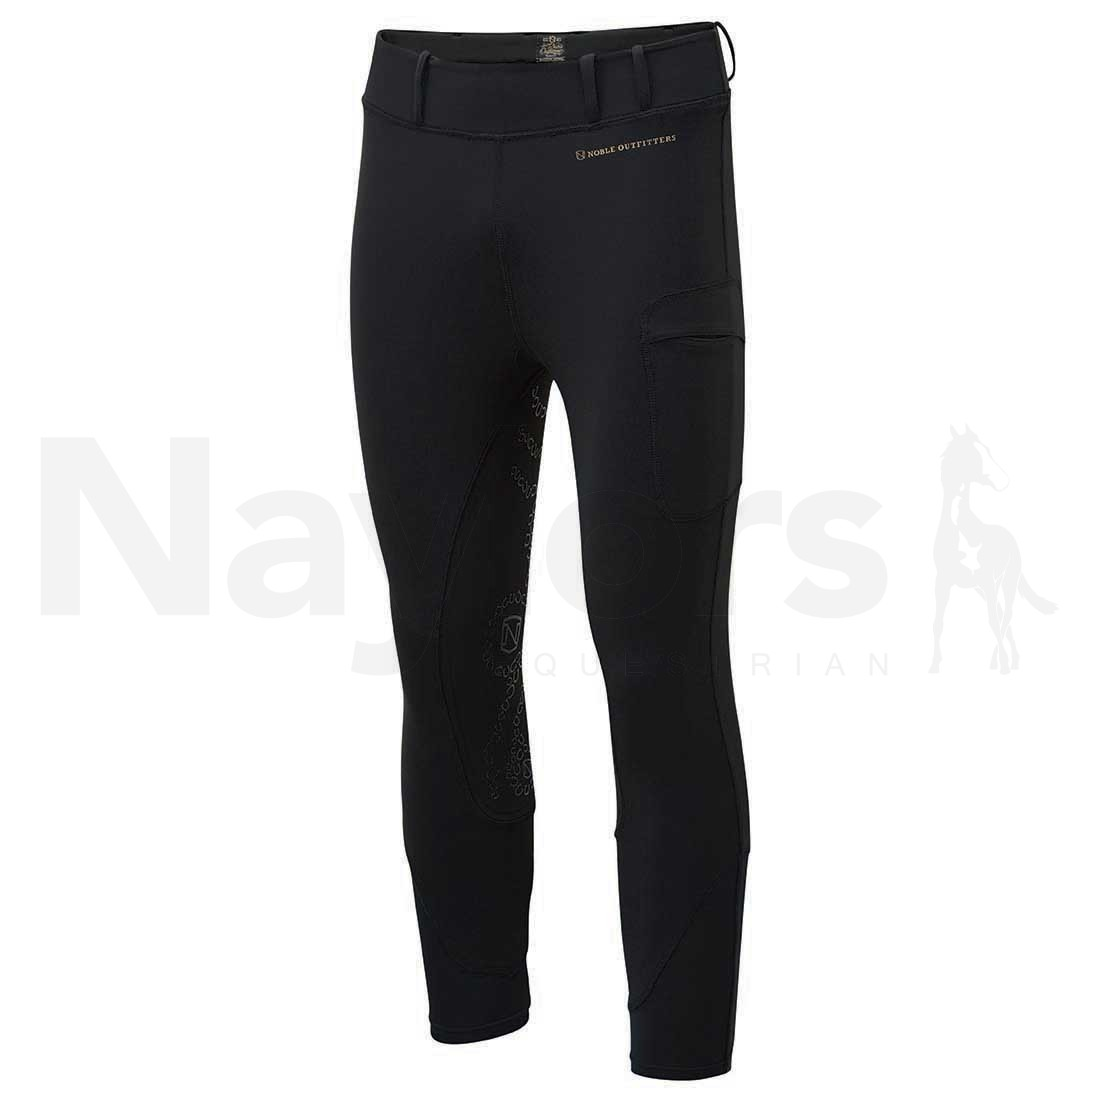 Ladies Noble Balance Riding Tights Black Image